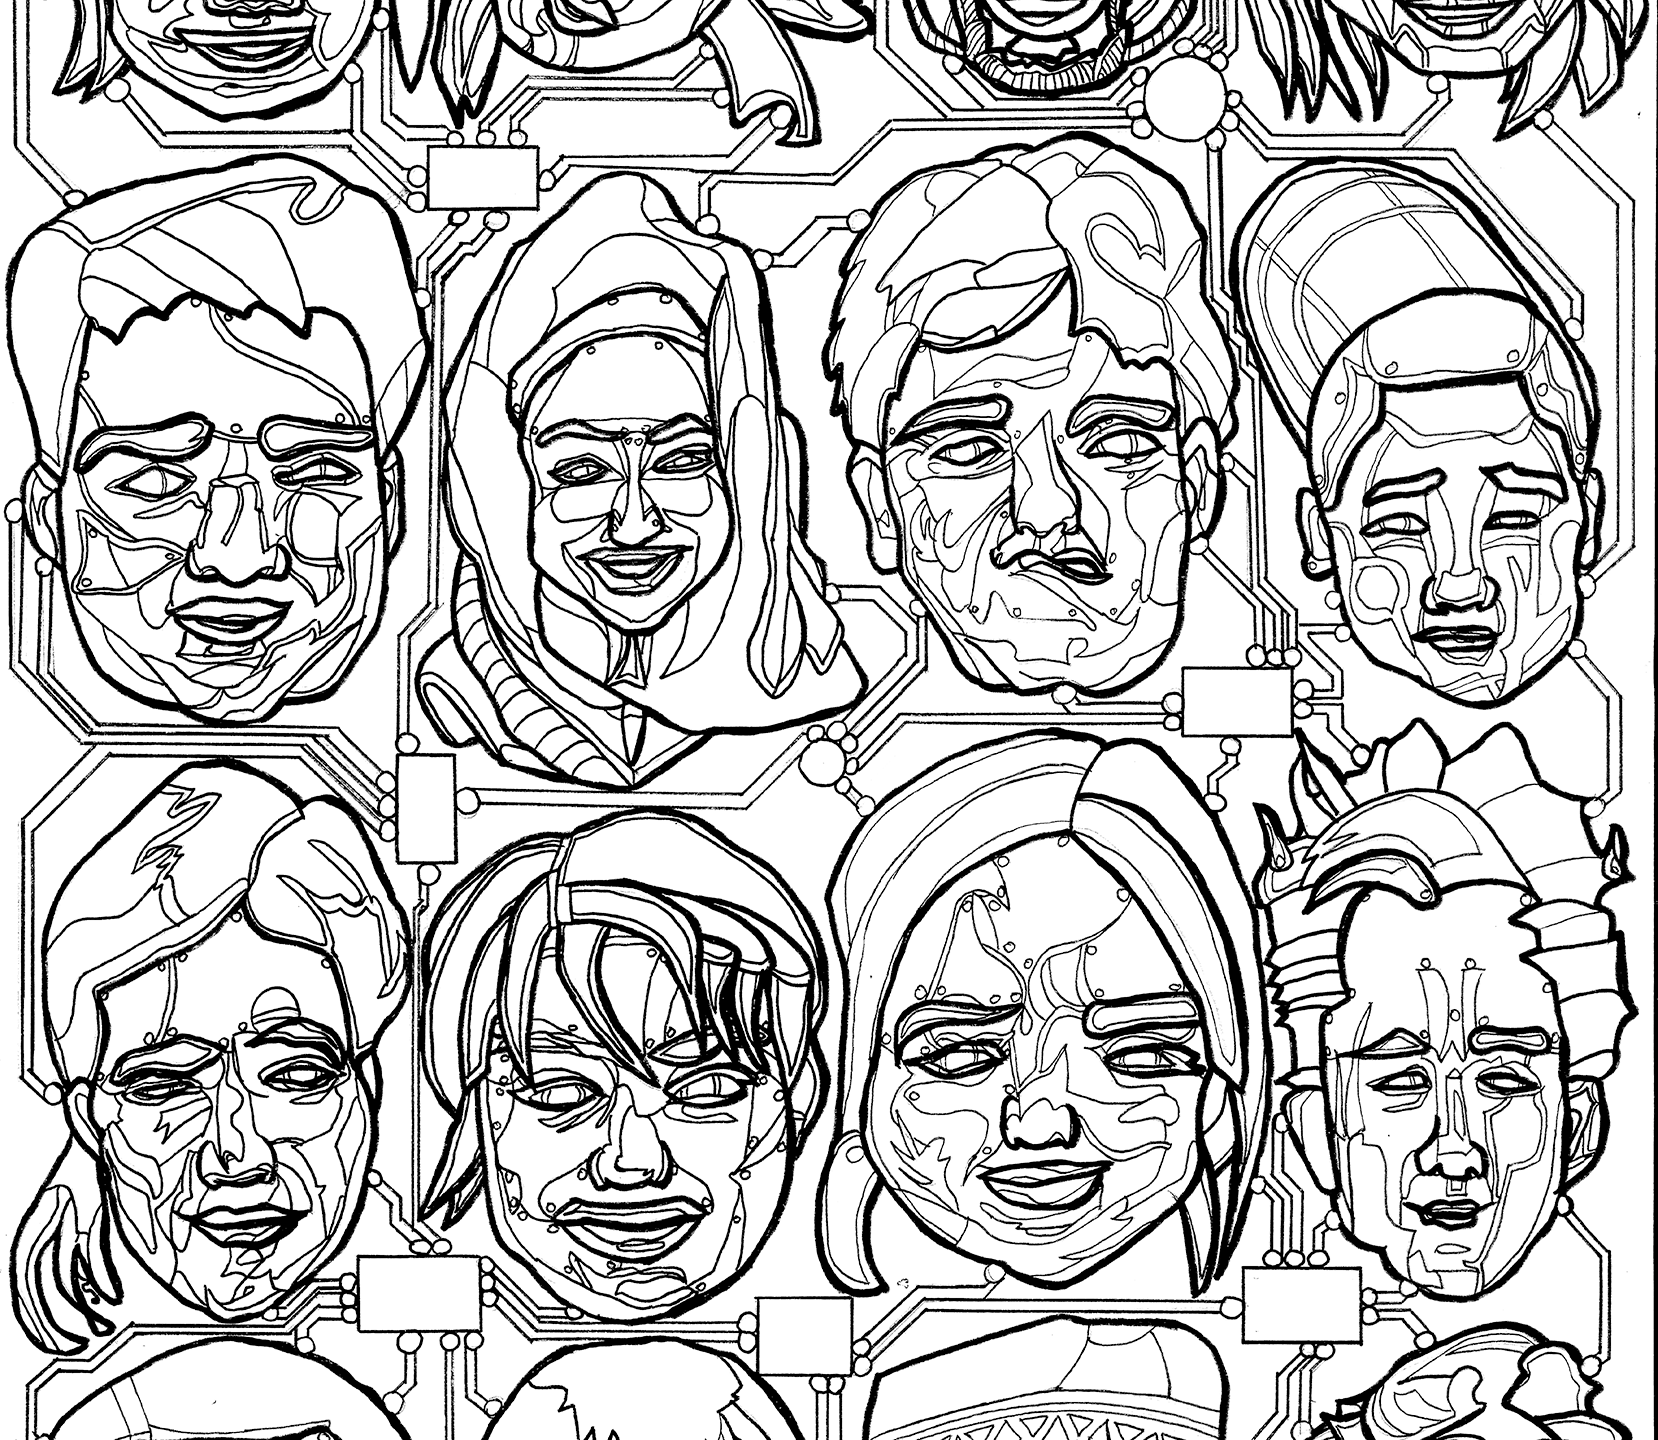 Faces first linework png